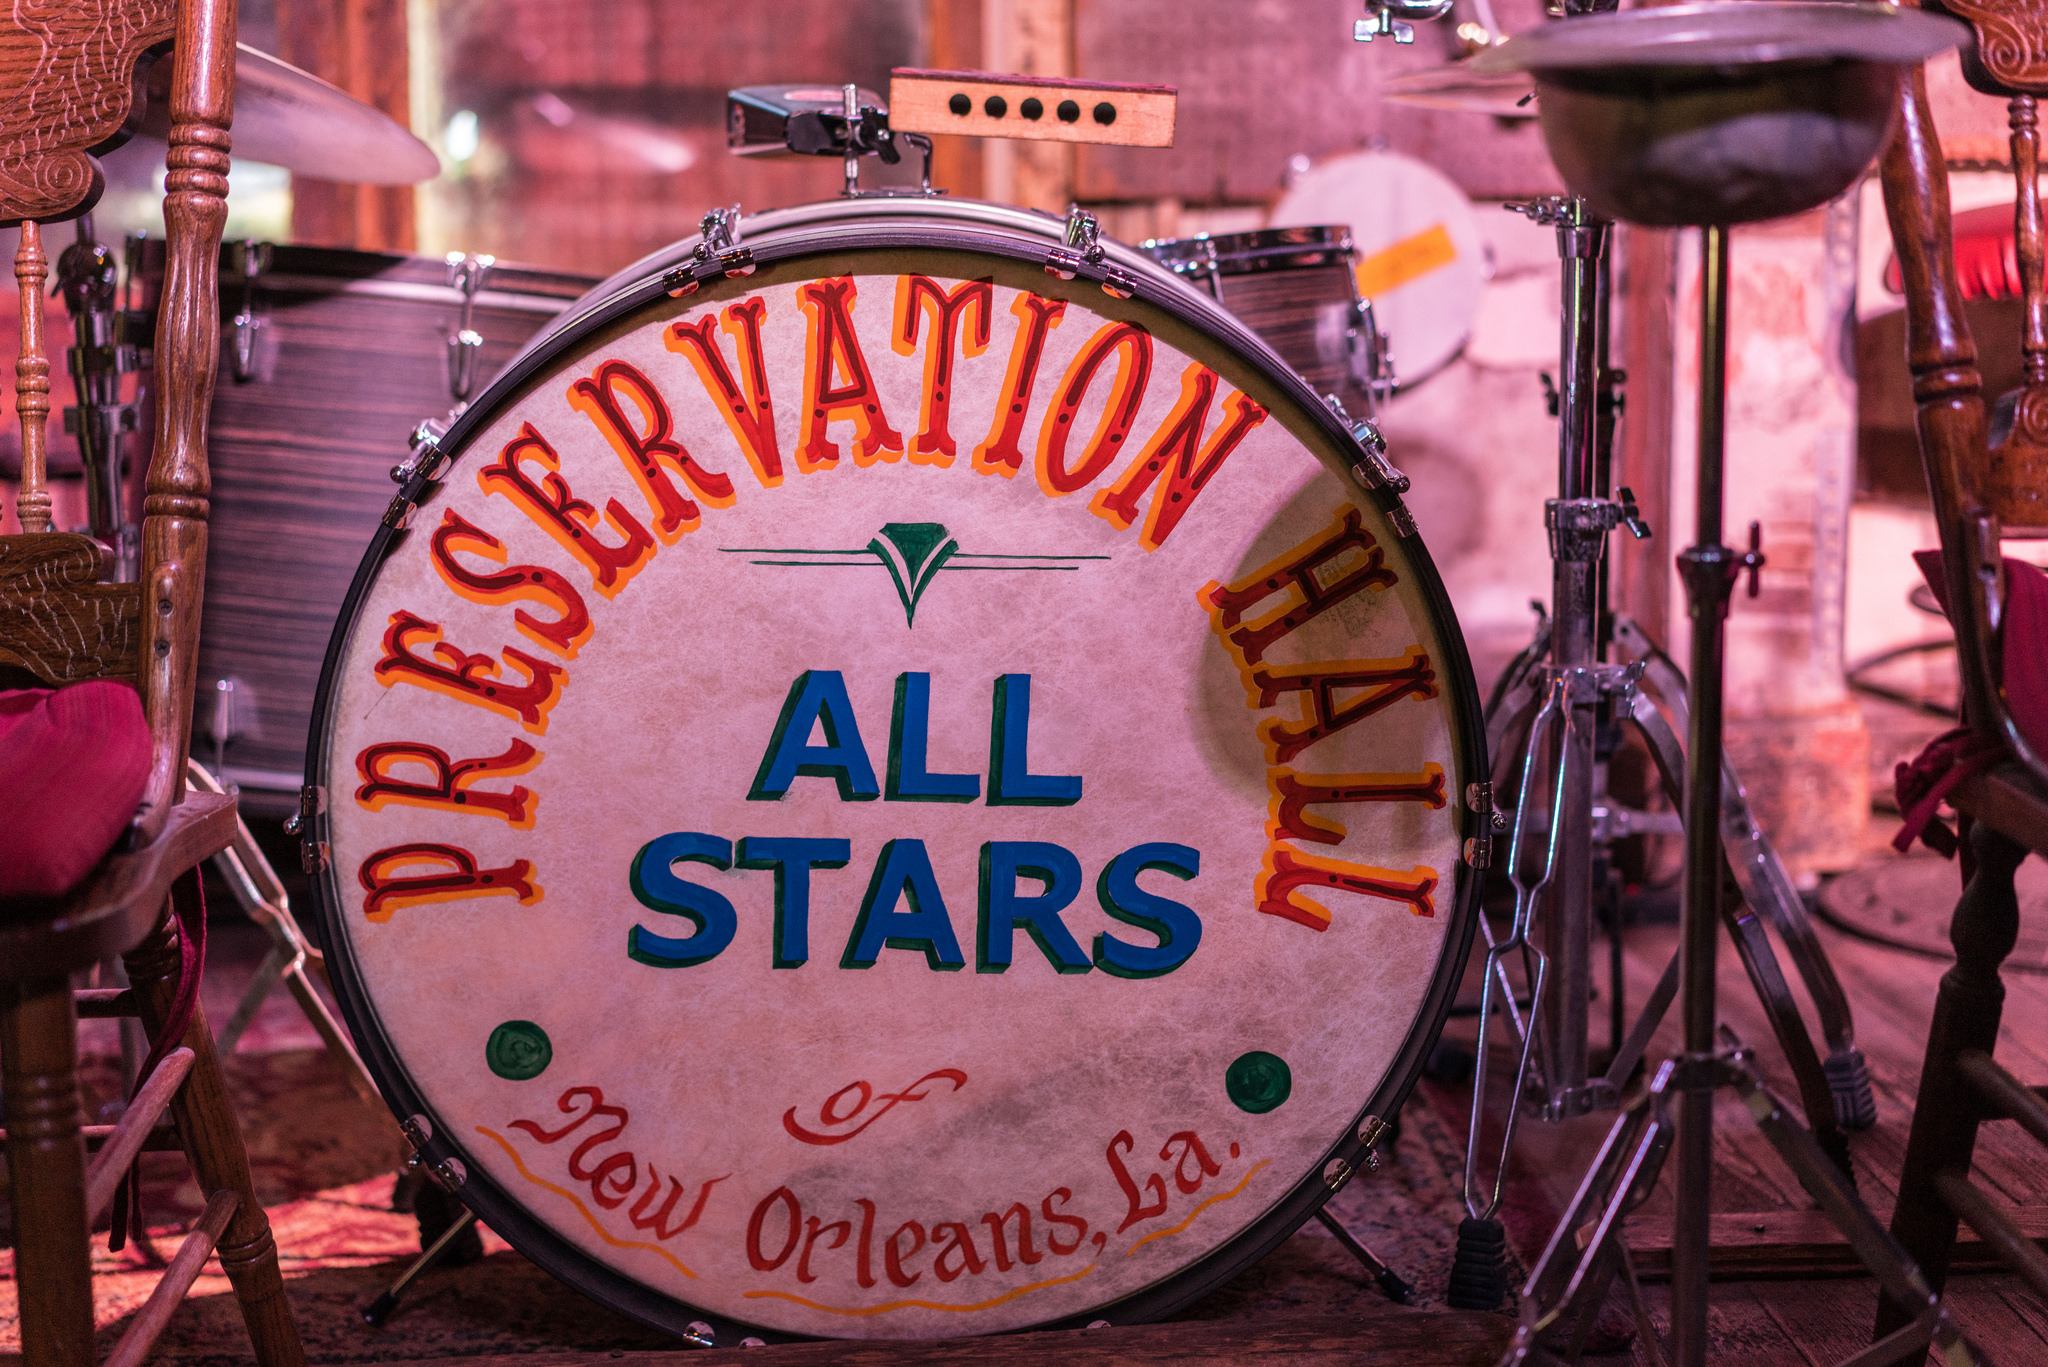 Visit Preservation Hall for nightly shows in the weekdays between Jazz & Heritage Festival. (Photo: Paul Broussard)